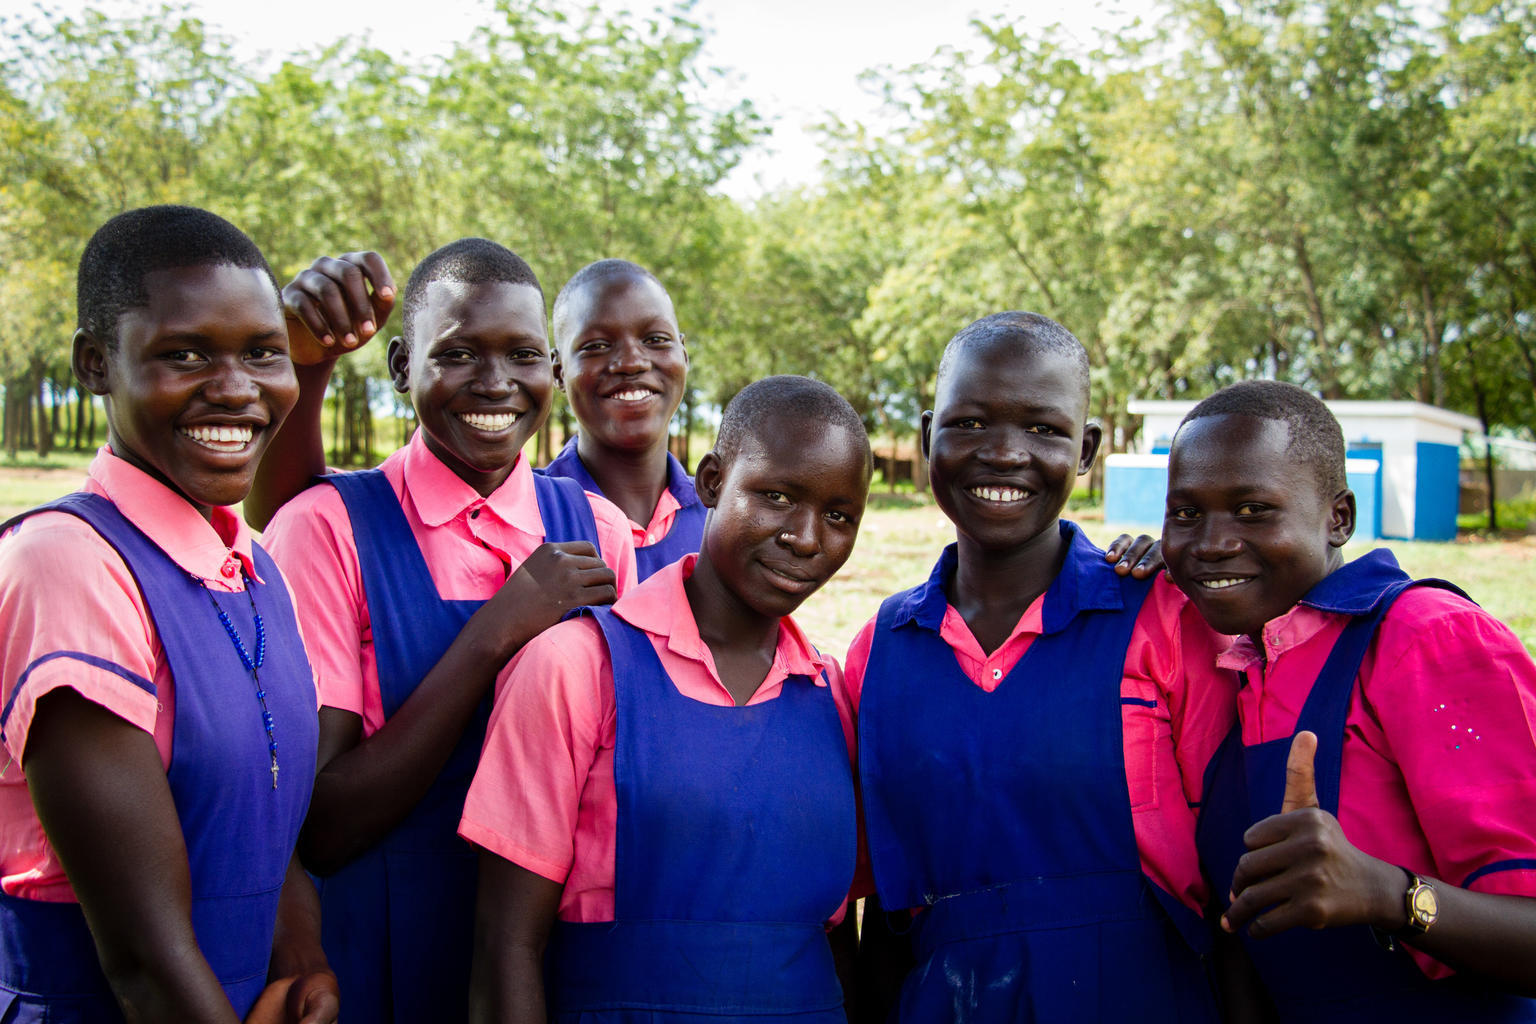 Female students pose in front of the new UNICEF funded bathrooms at Umwia Primary School in Adjumani District, Northern Uganda. Girls can now stay in school comfortably during menstruation. © UNICEF/UNI232820/Bridger